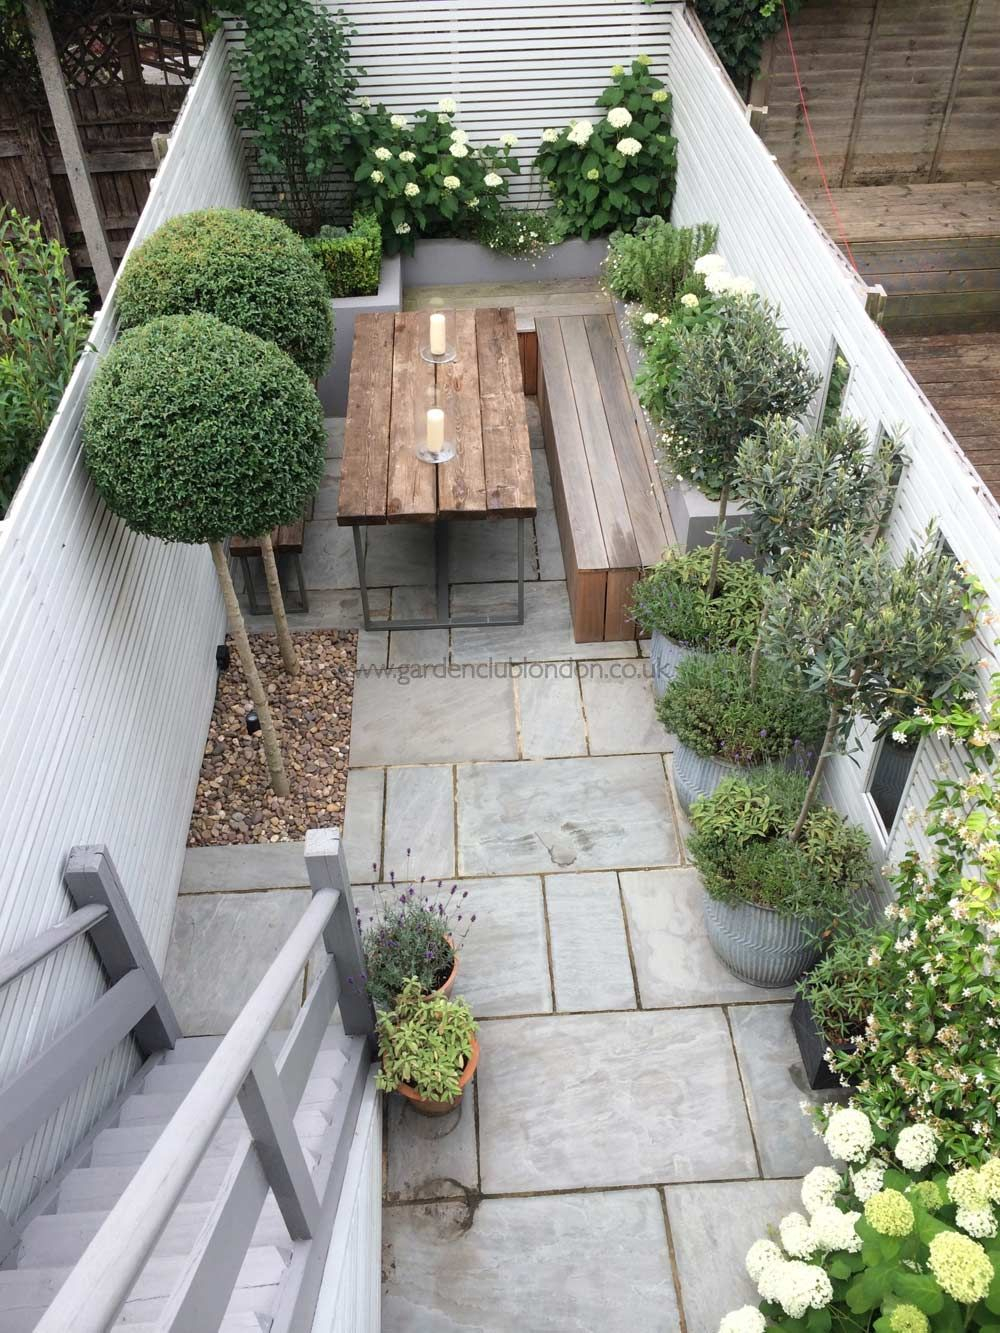 40 Garden Ideas For A Small Backyard For The Home Garden Small within 14 Clever Initiatives of How to Build Landscape Design Ideas For Small Backyards